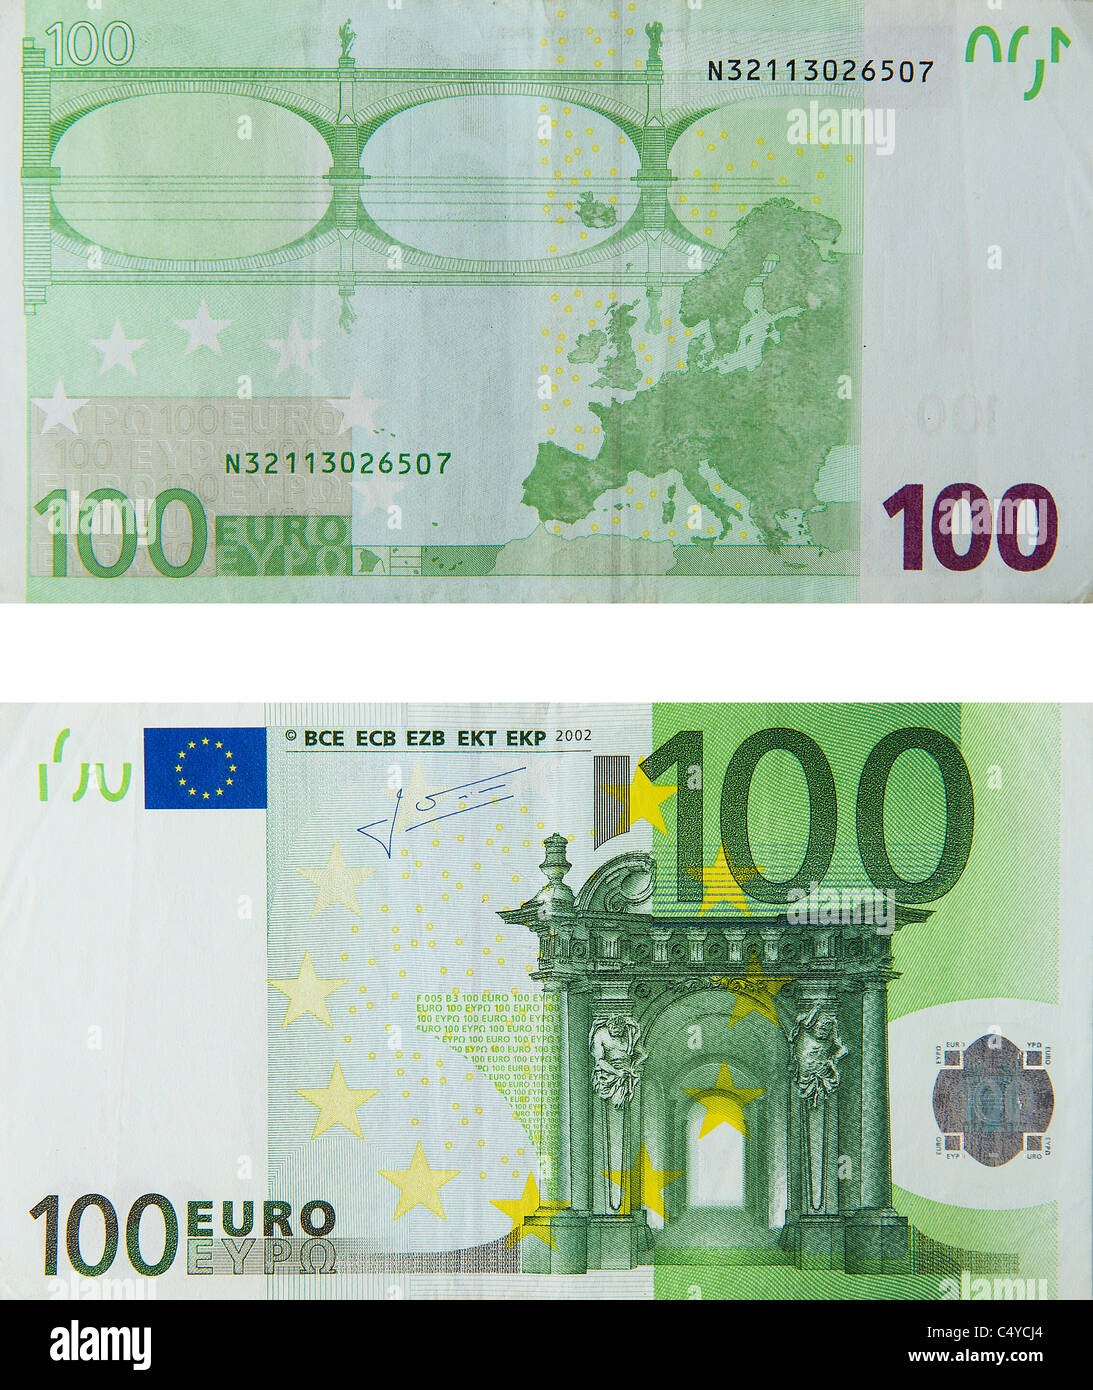 100 euro note stock photos 100 euro note stock images alamy. Black Bedroom Furniture Sets. Home Design Ideas